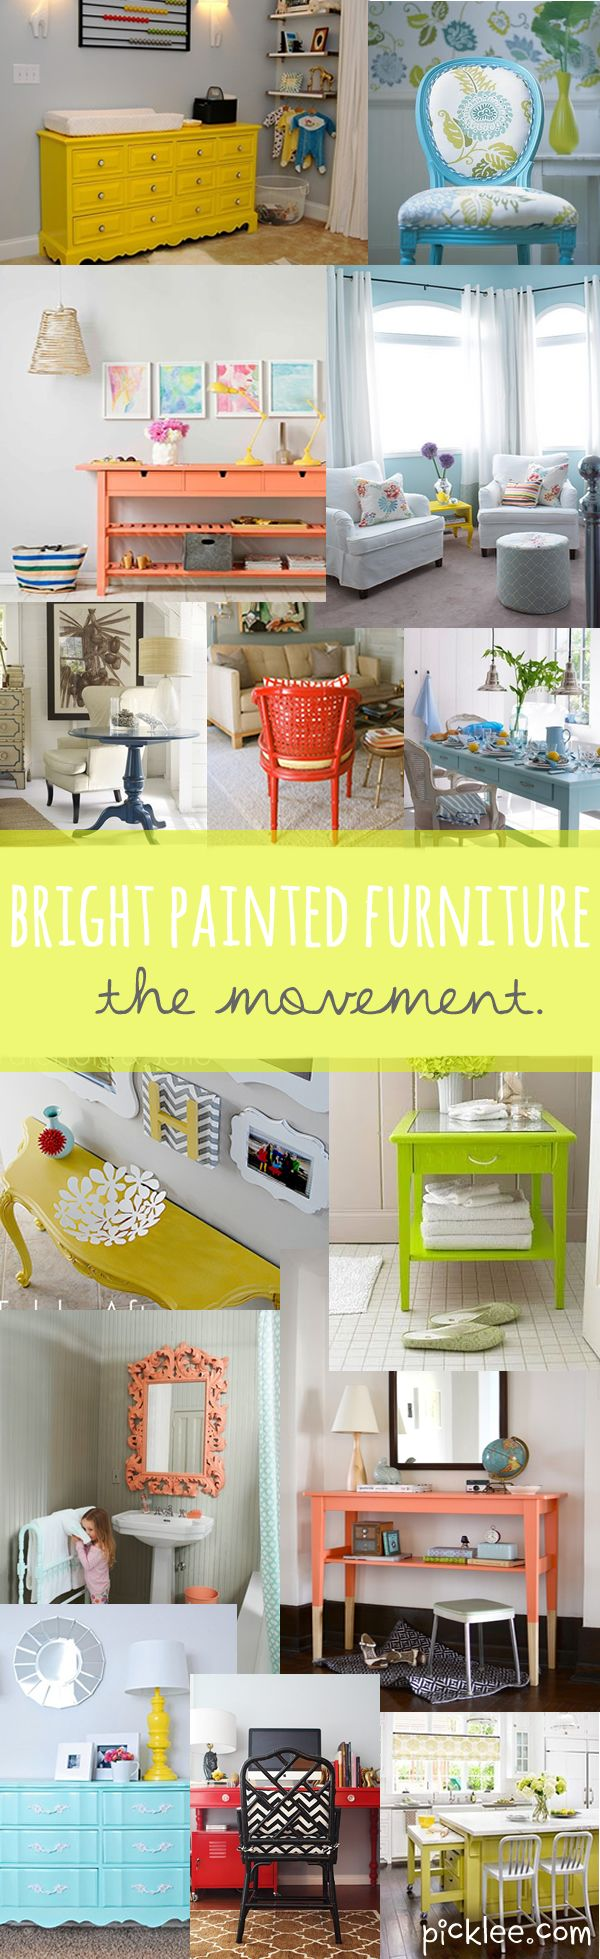 painted furniture2